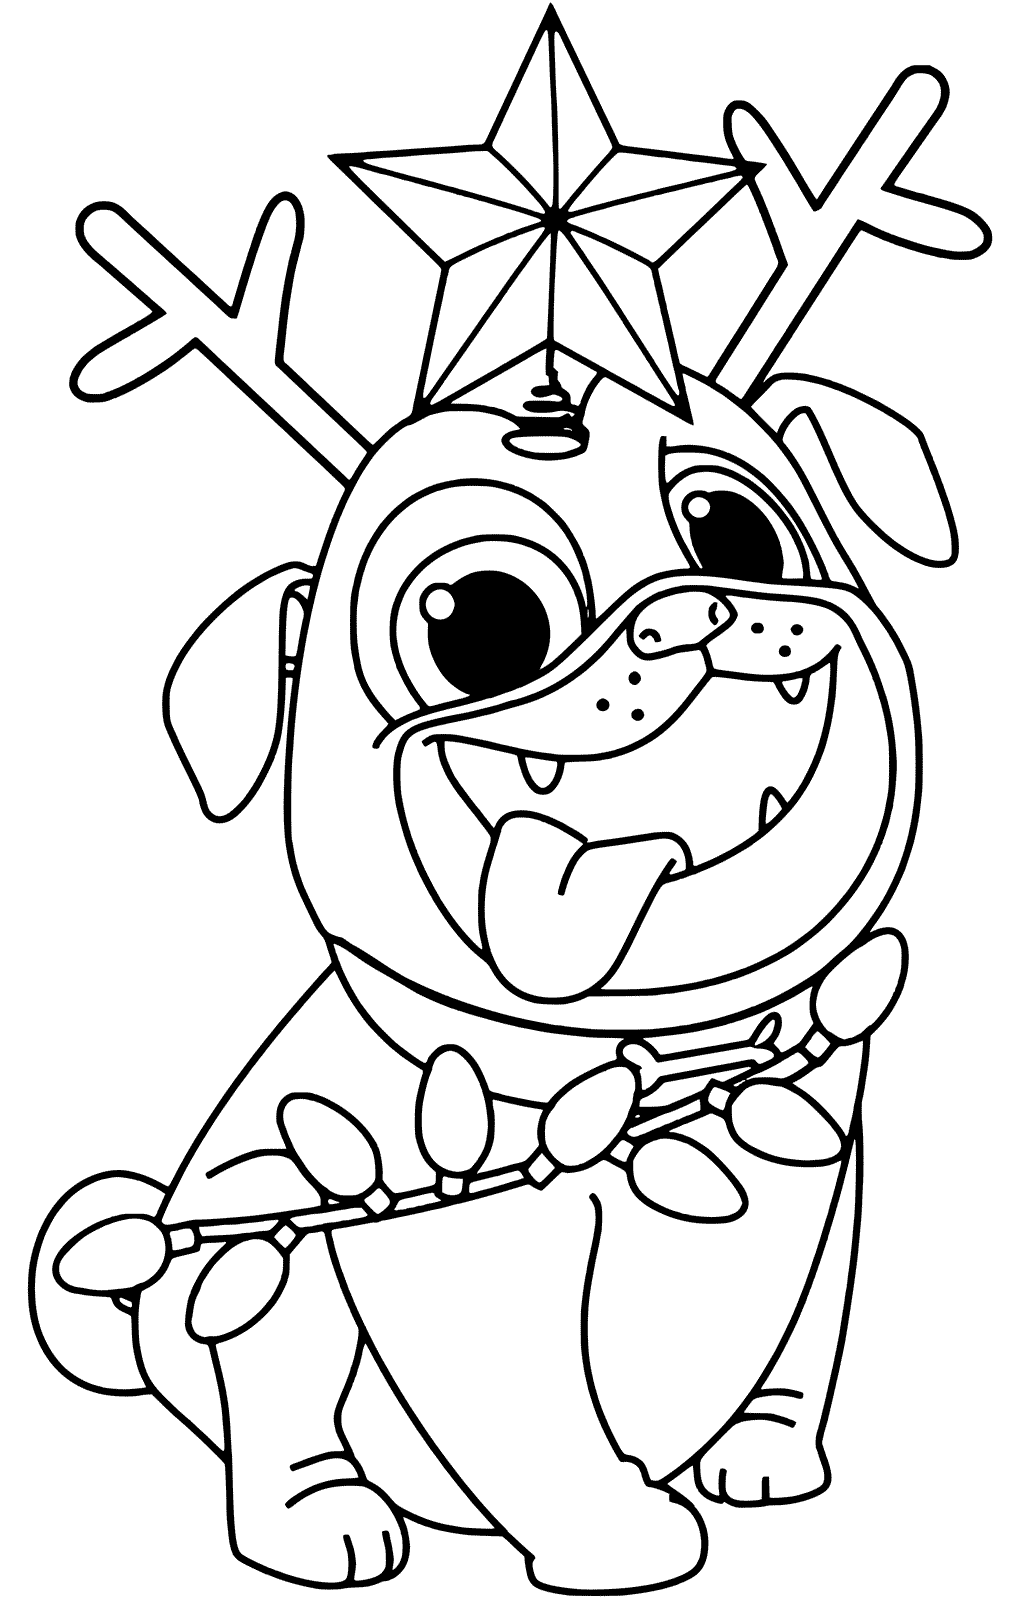 printable puppy pictures puppy dog pals coloring pages to print puppy printable pictures